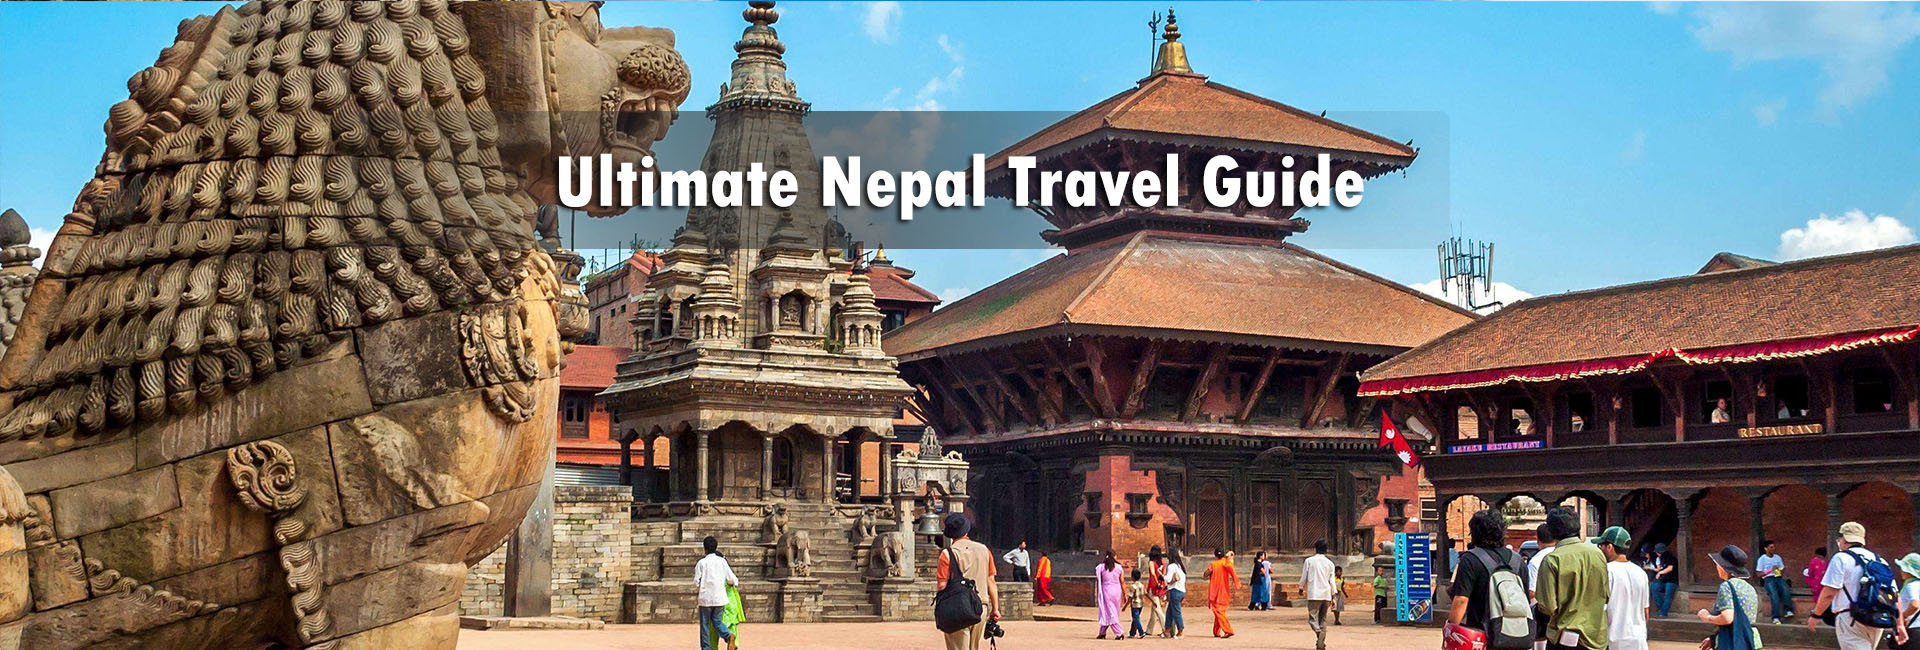 Nepal Travel Guide 2020/2021